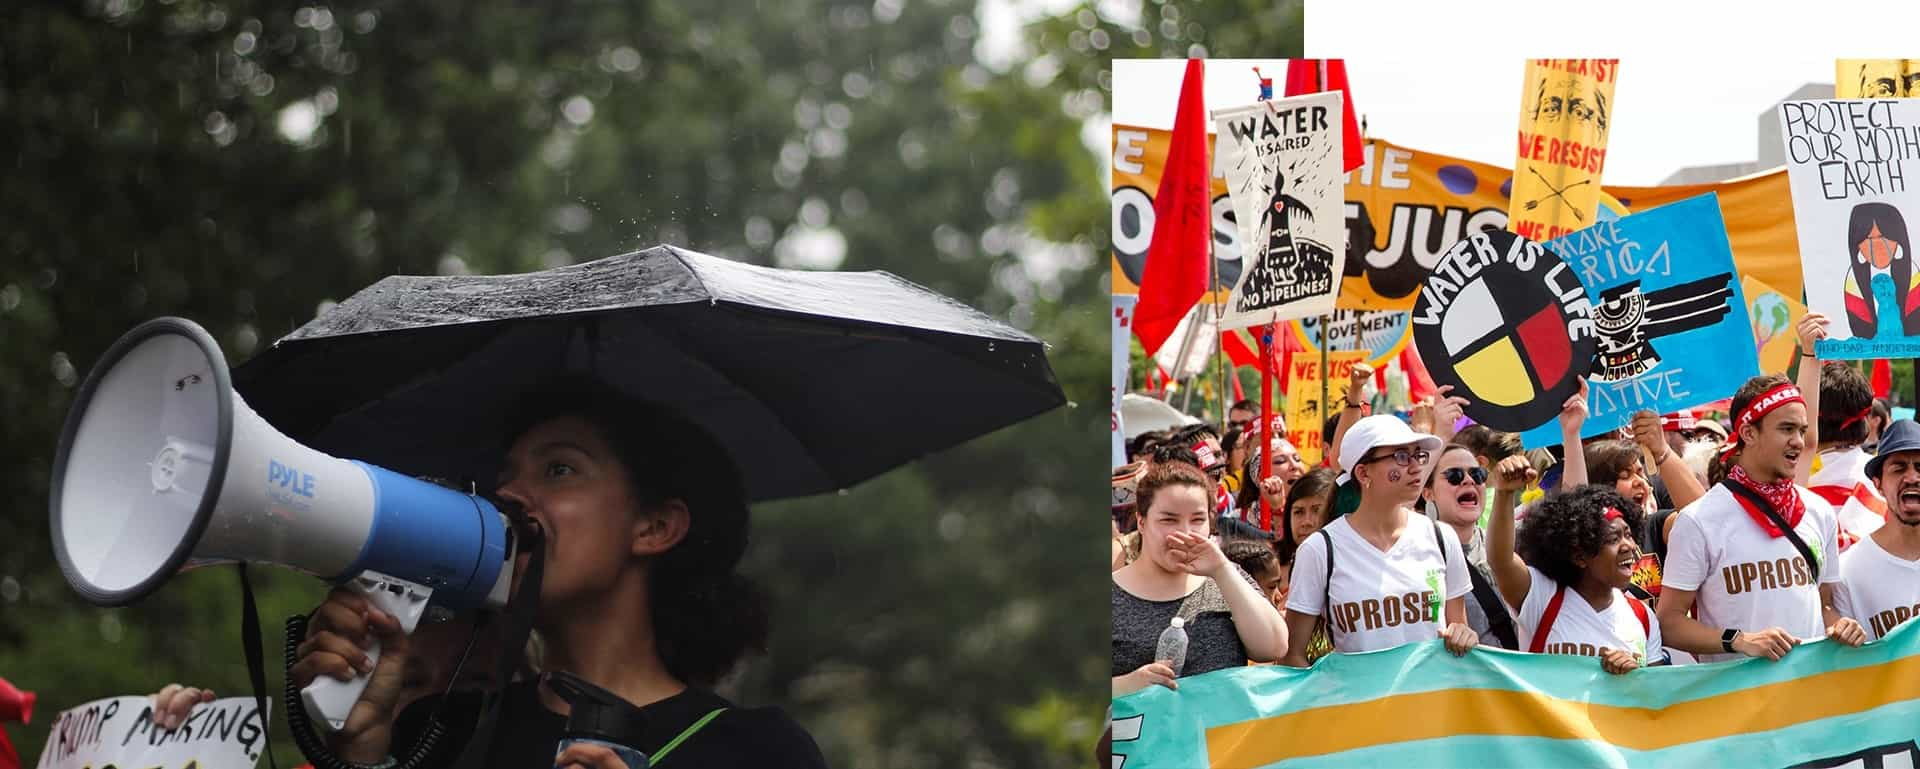 Climate Justice March and Trump Protest